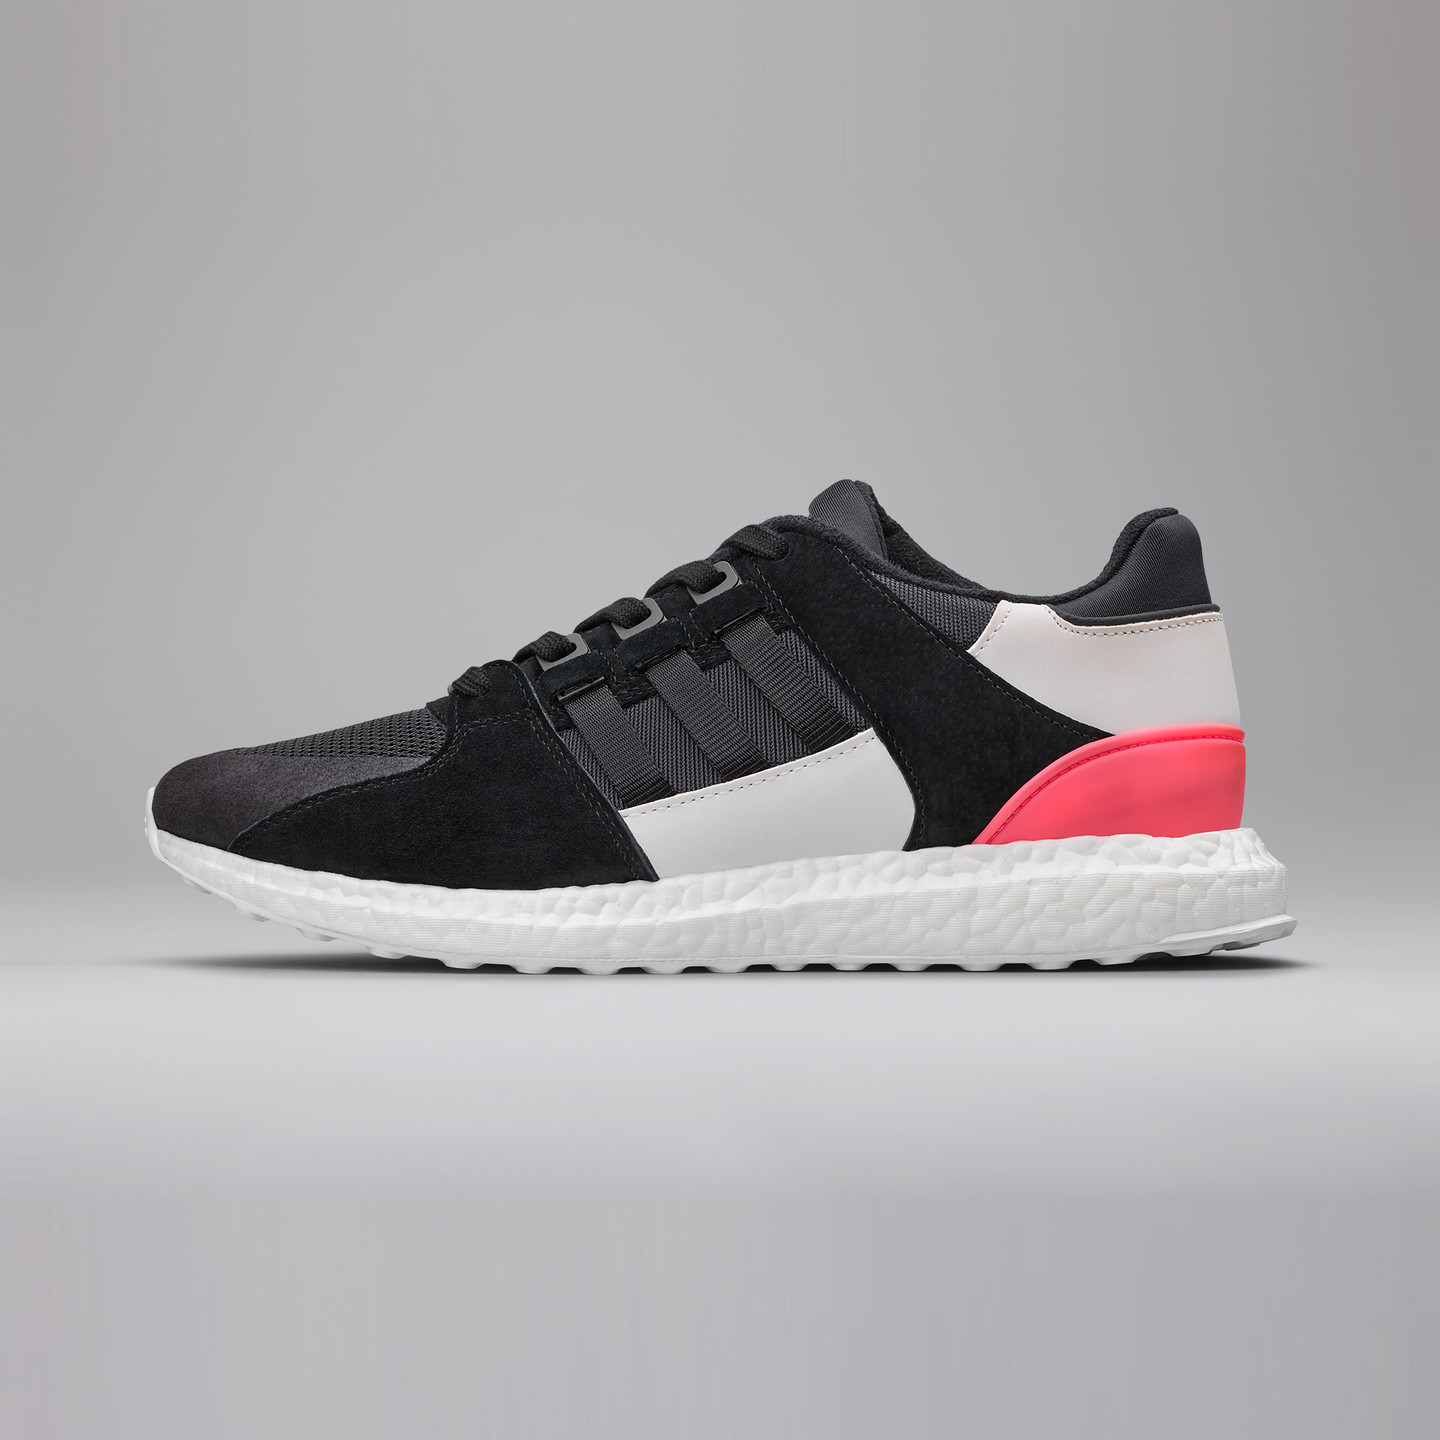 Adidas EQT Support Ultra Black / Turbo Red BB1237-42.66